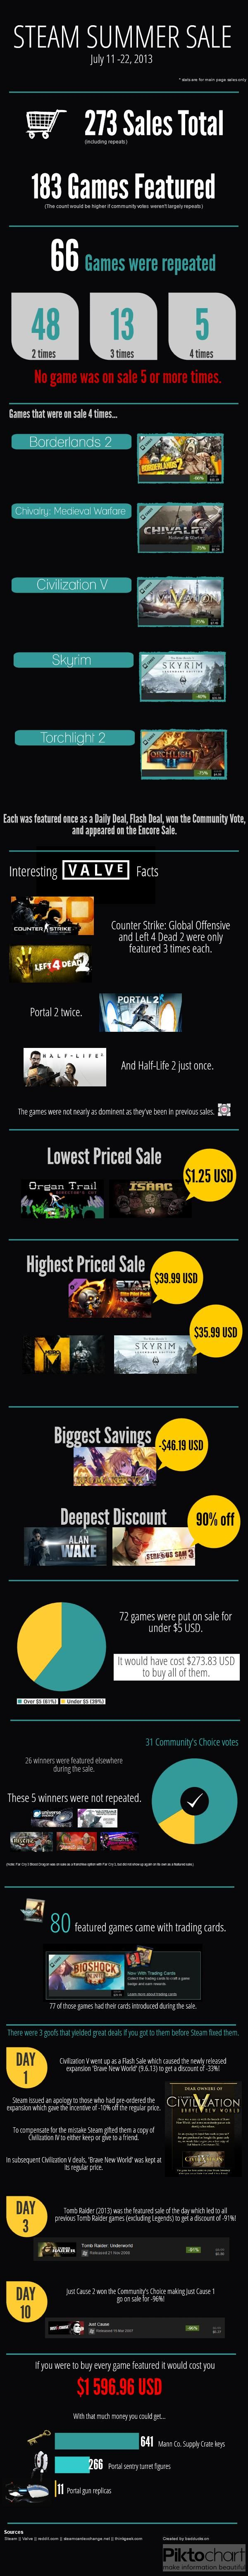 #Steam Summer Sale Infographic